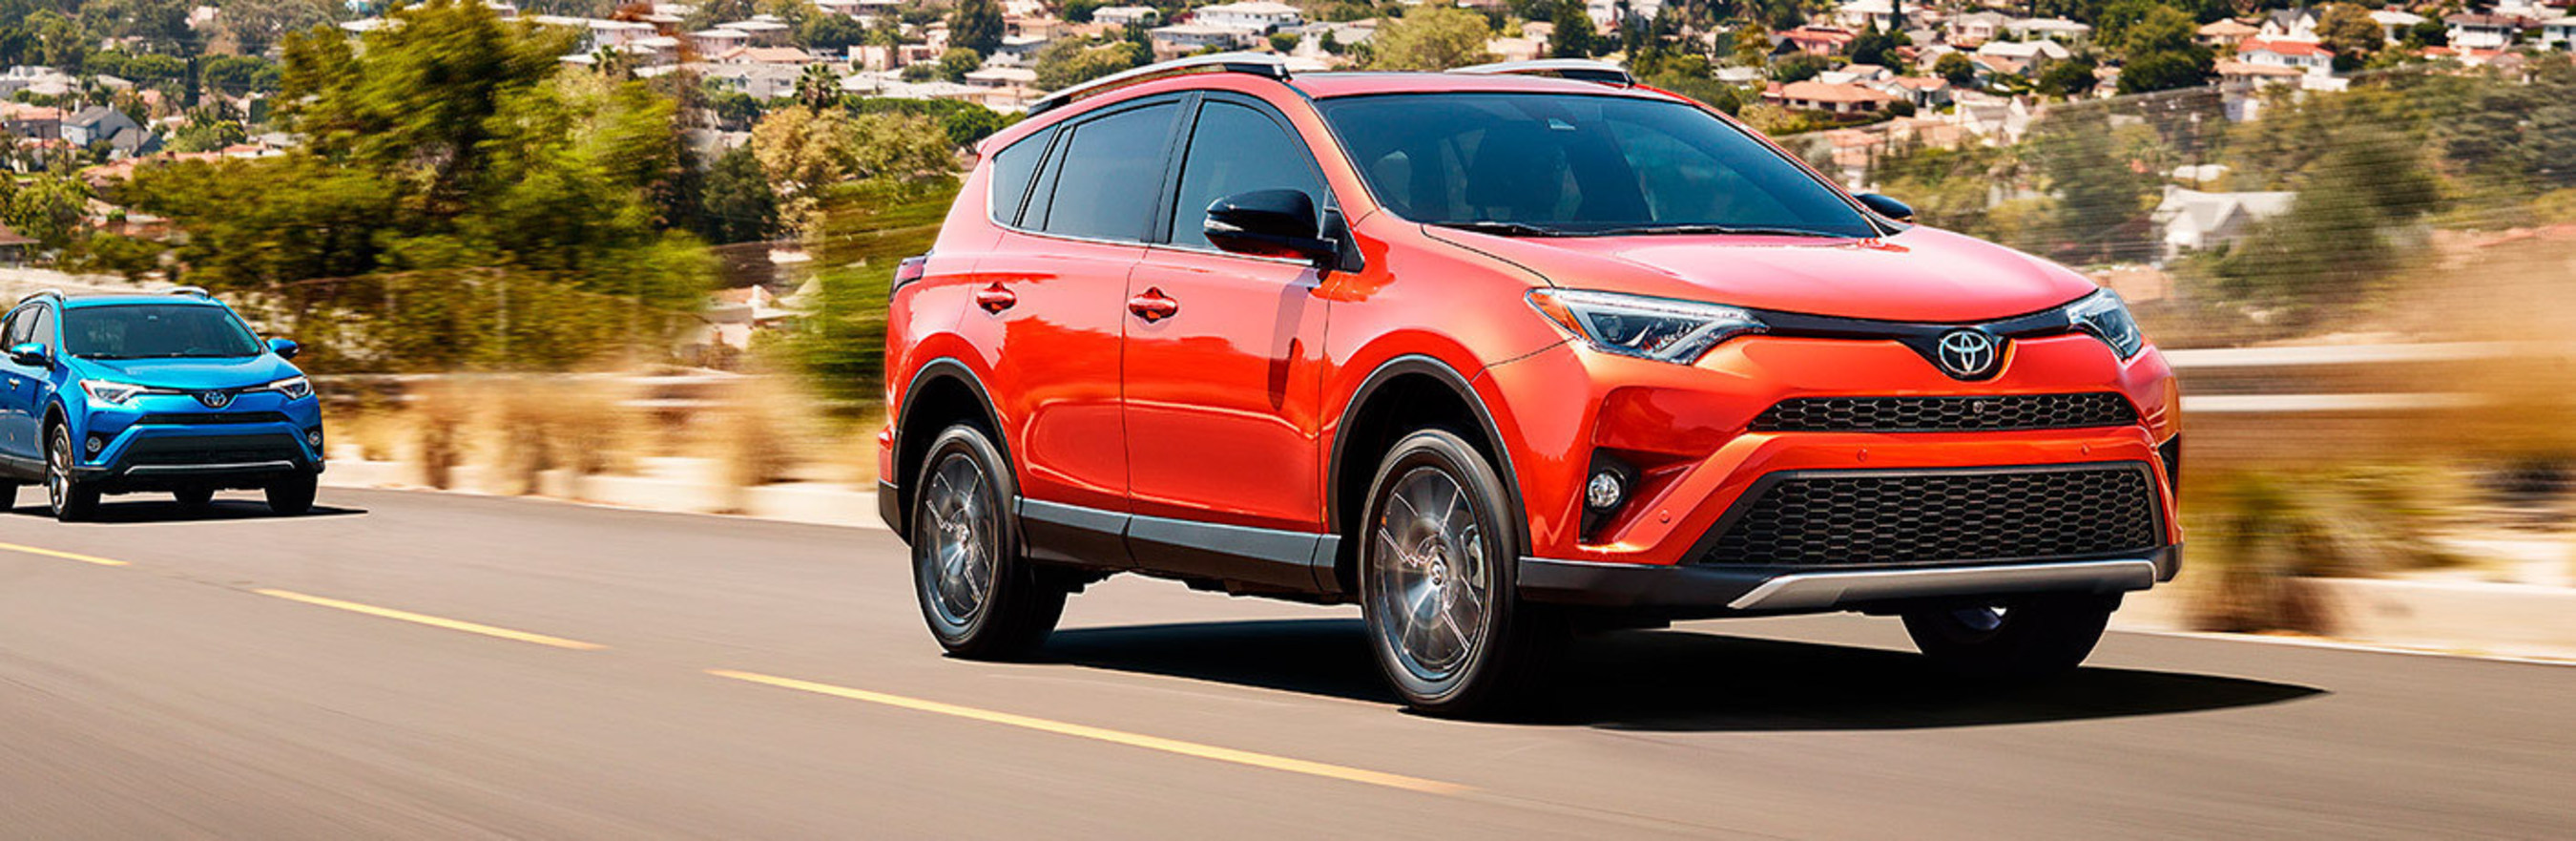 2017 toyota rav4 offers new top model to buyers. Black Bedroom Furniture Sets. Home Design Ideas